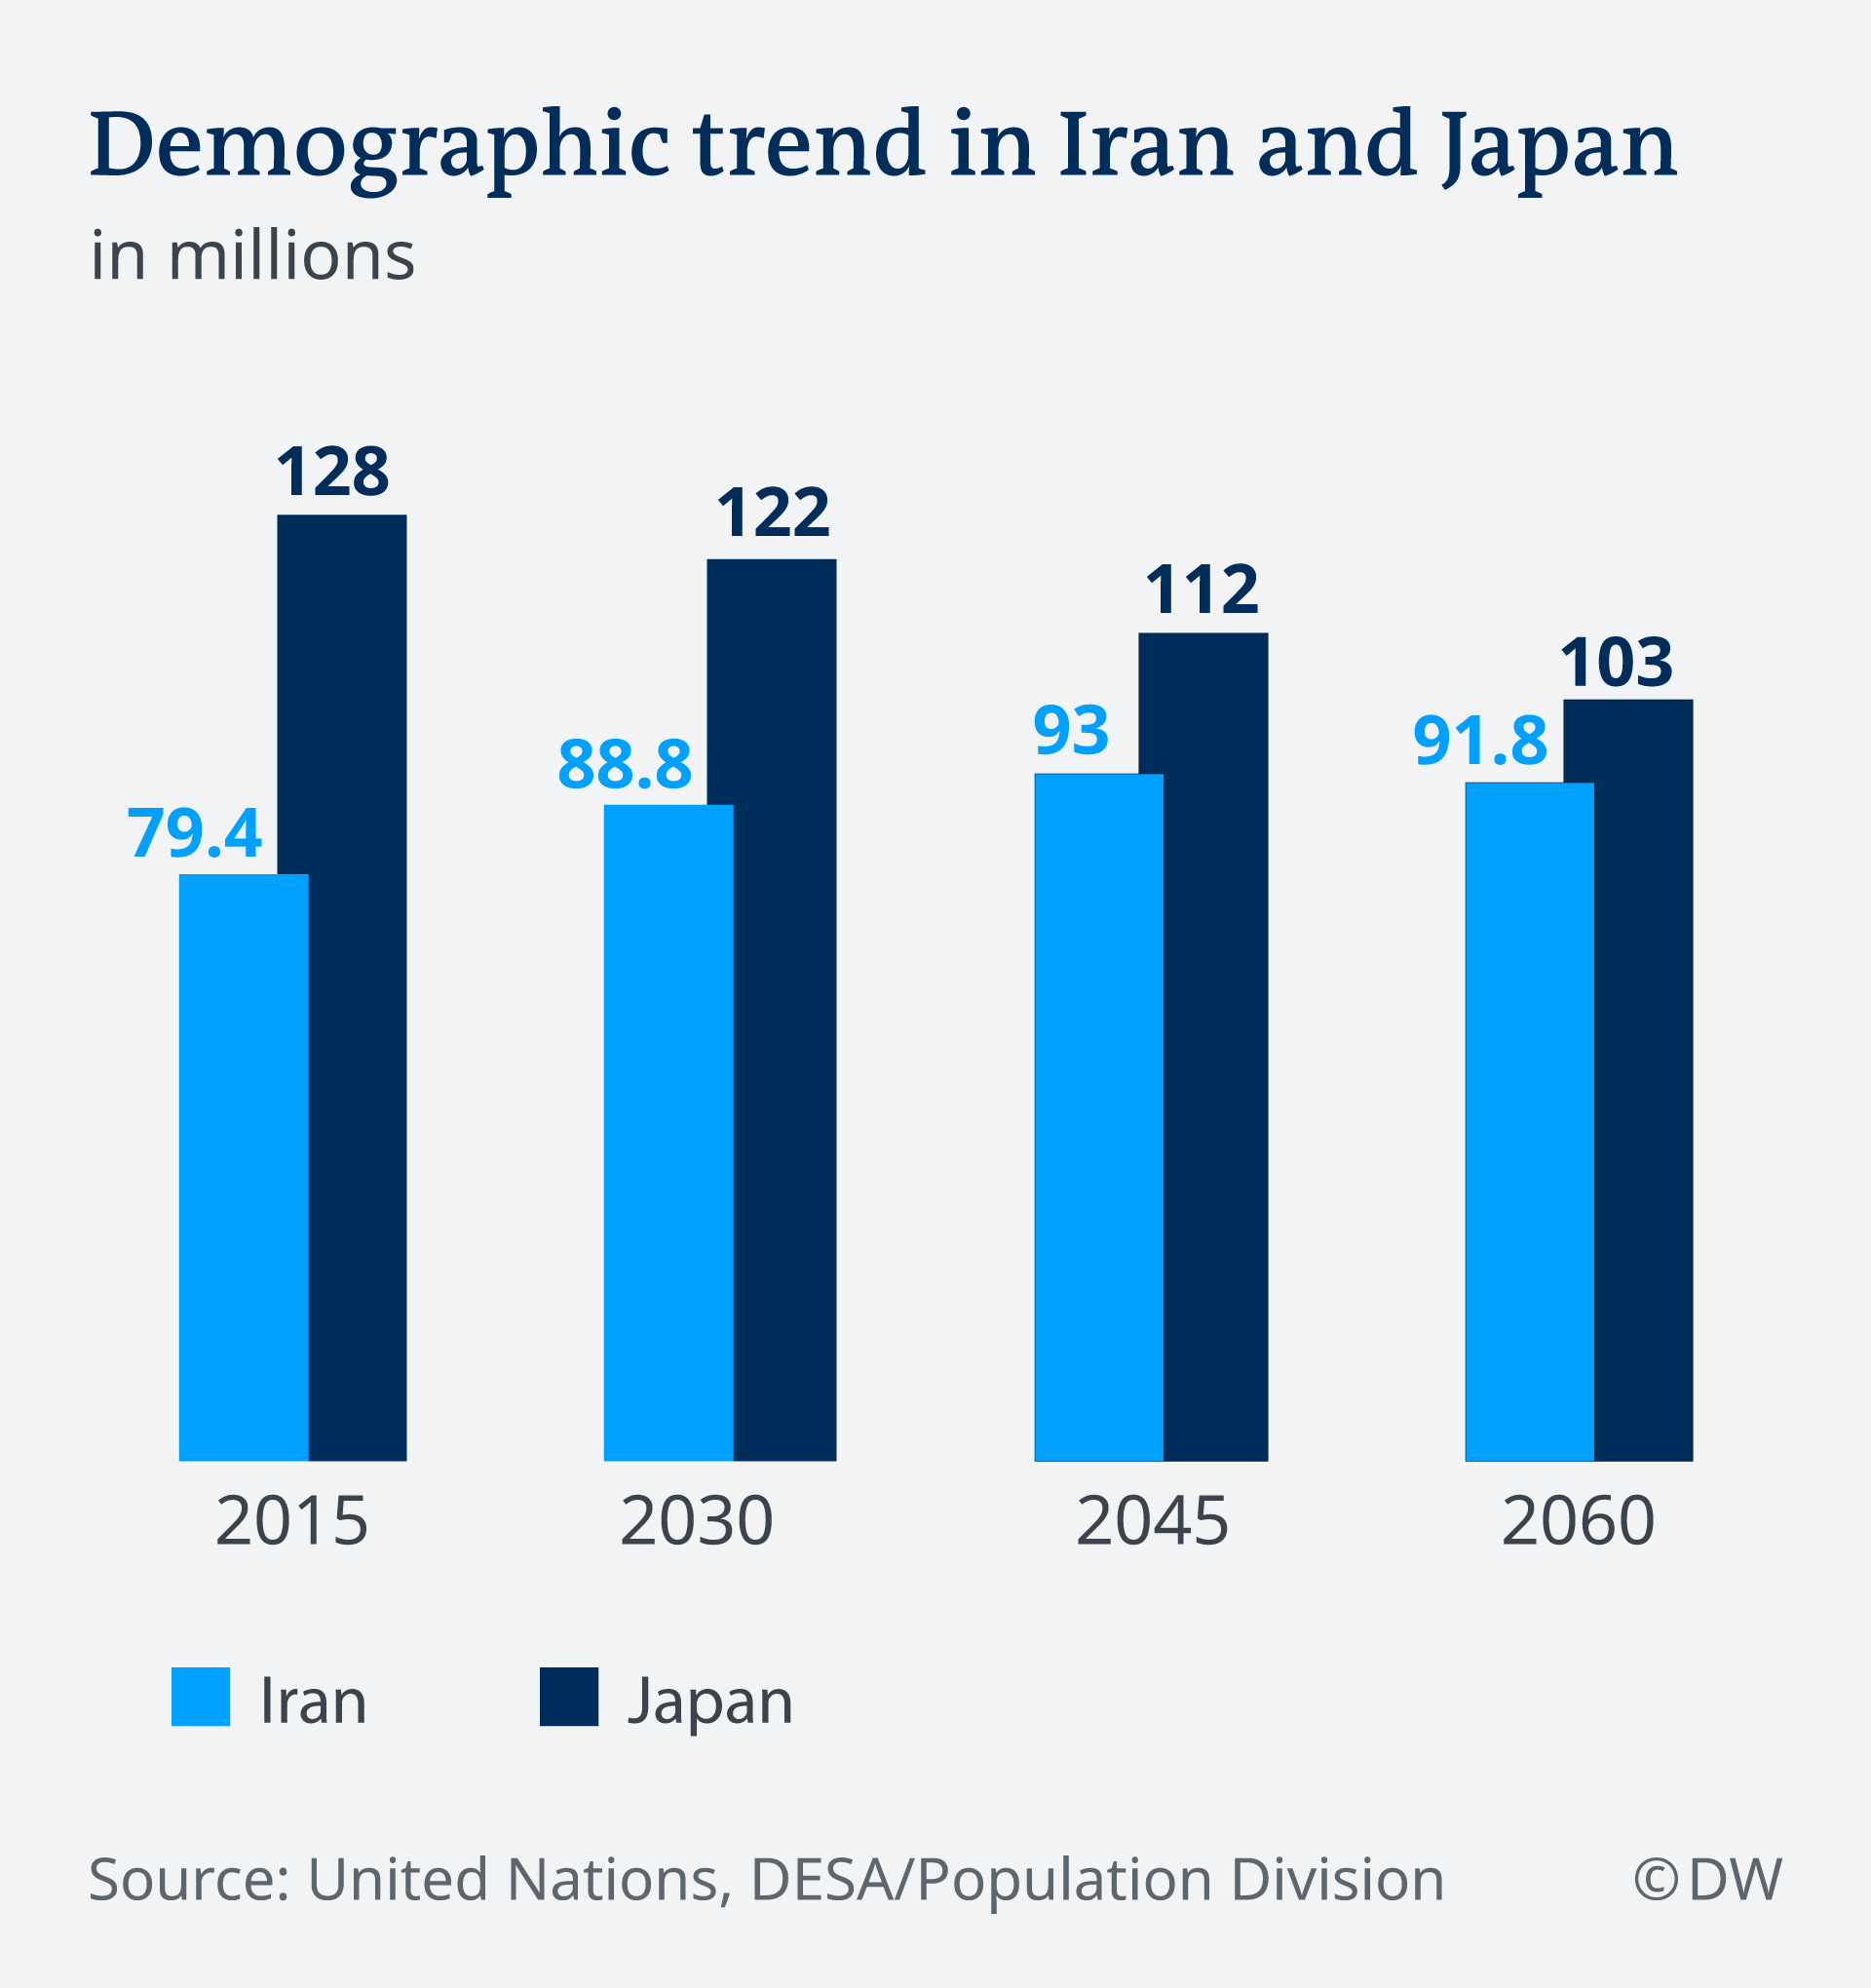 Bar chart showing the 2015 population figures for Iran and Japan, plus projections for 2030, 2045 and 2060.